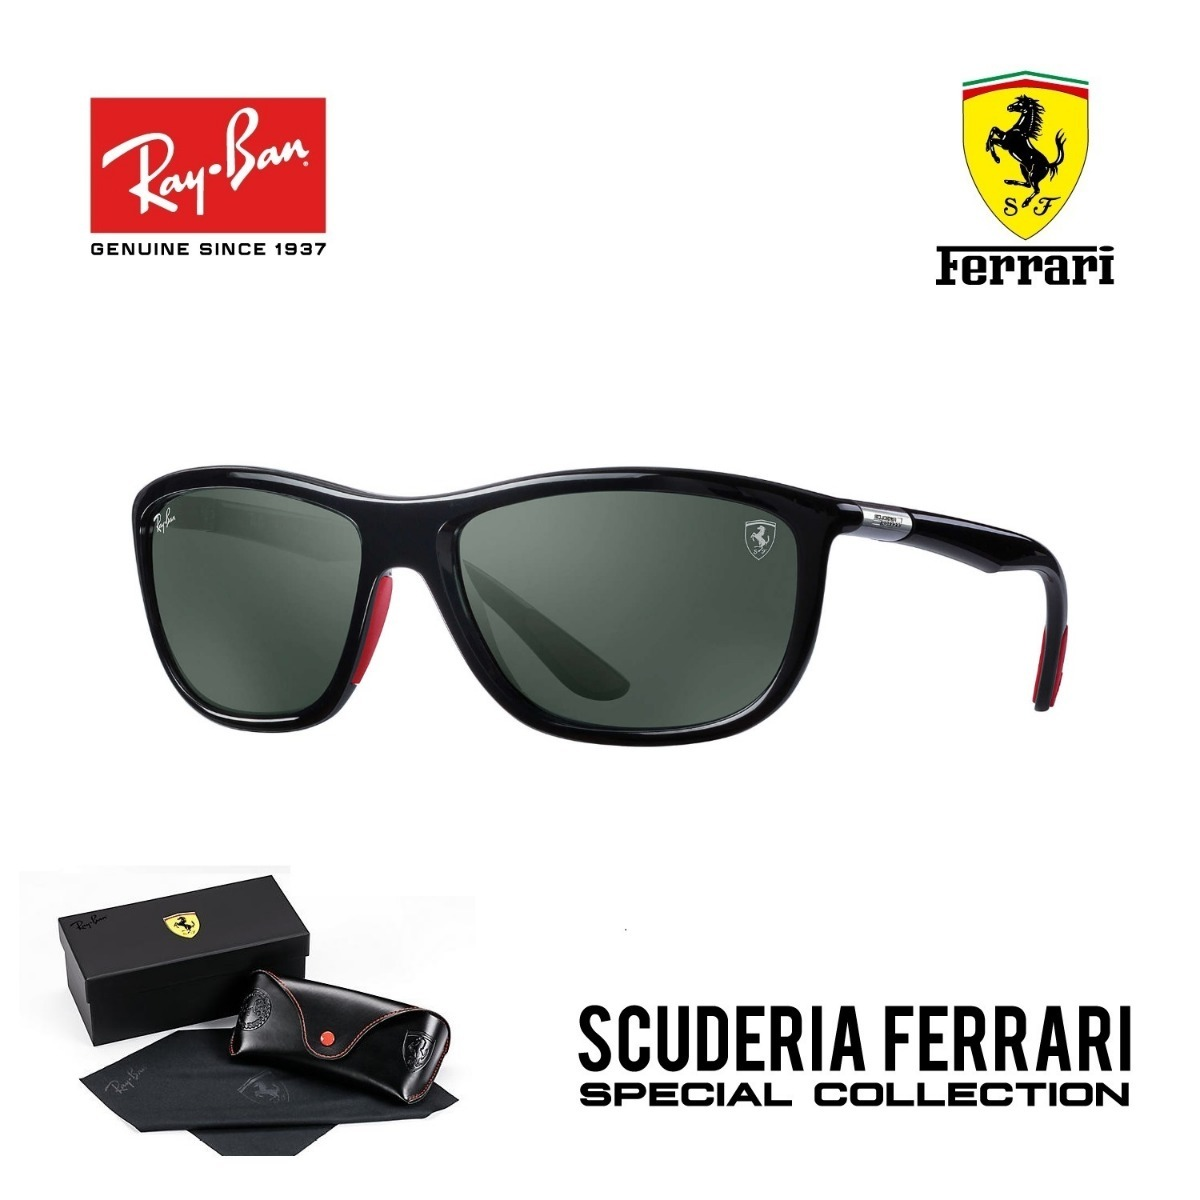 bbe7861ae Ray Ban 8351 Scuderia Ferrari Collection Original + Brinde - R$ 349 ...